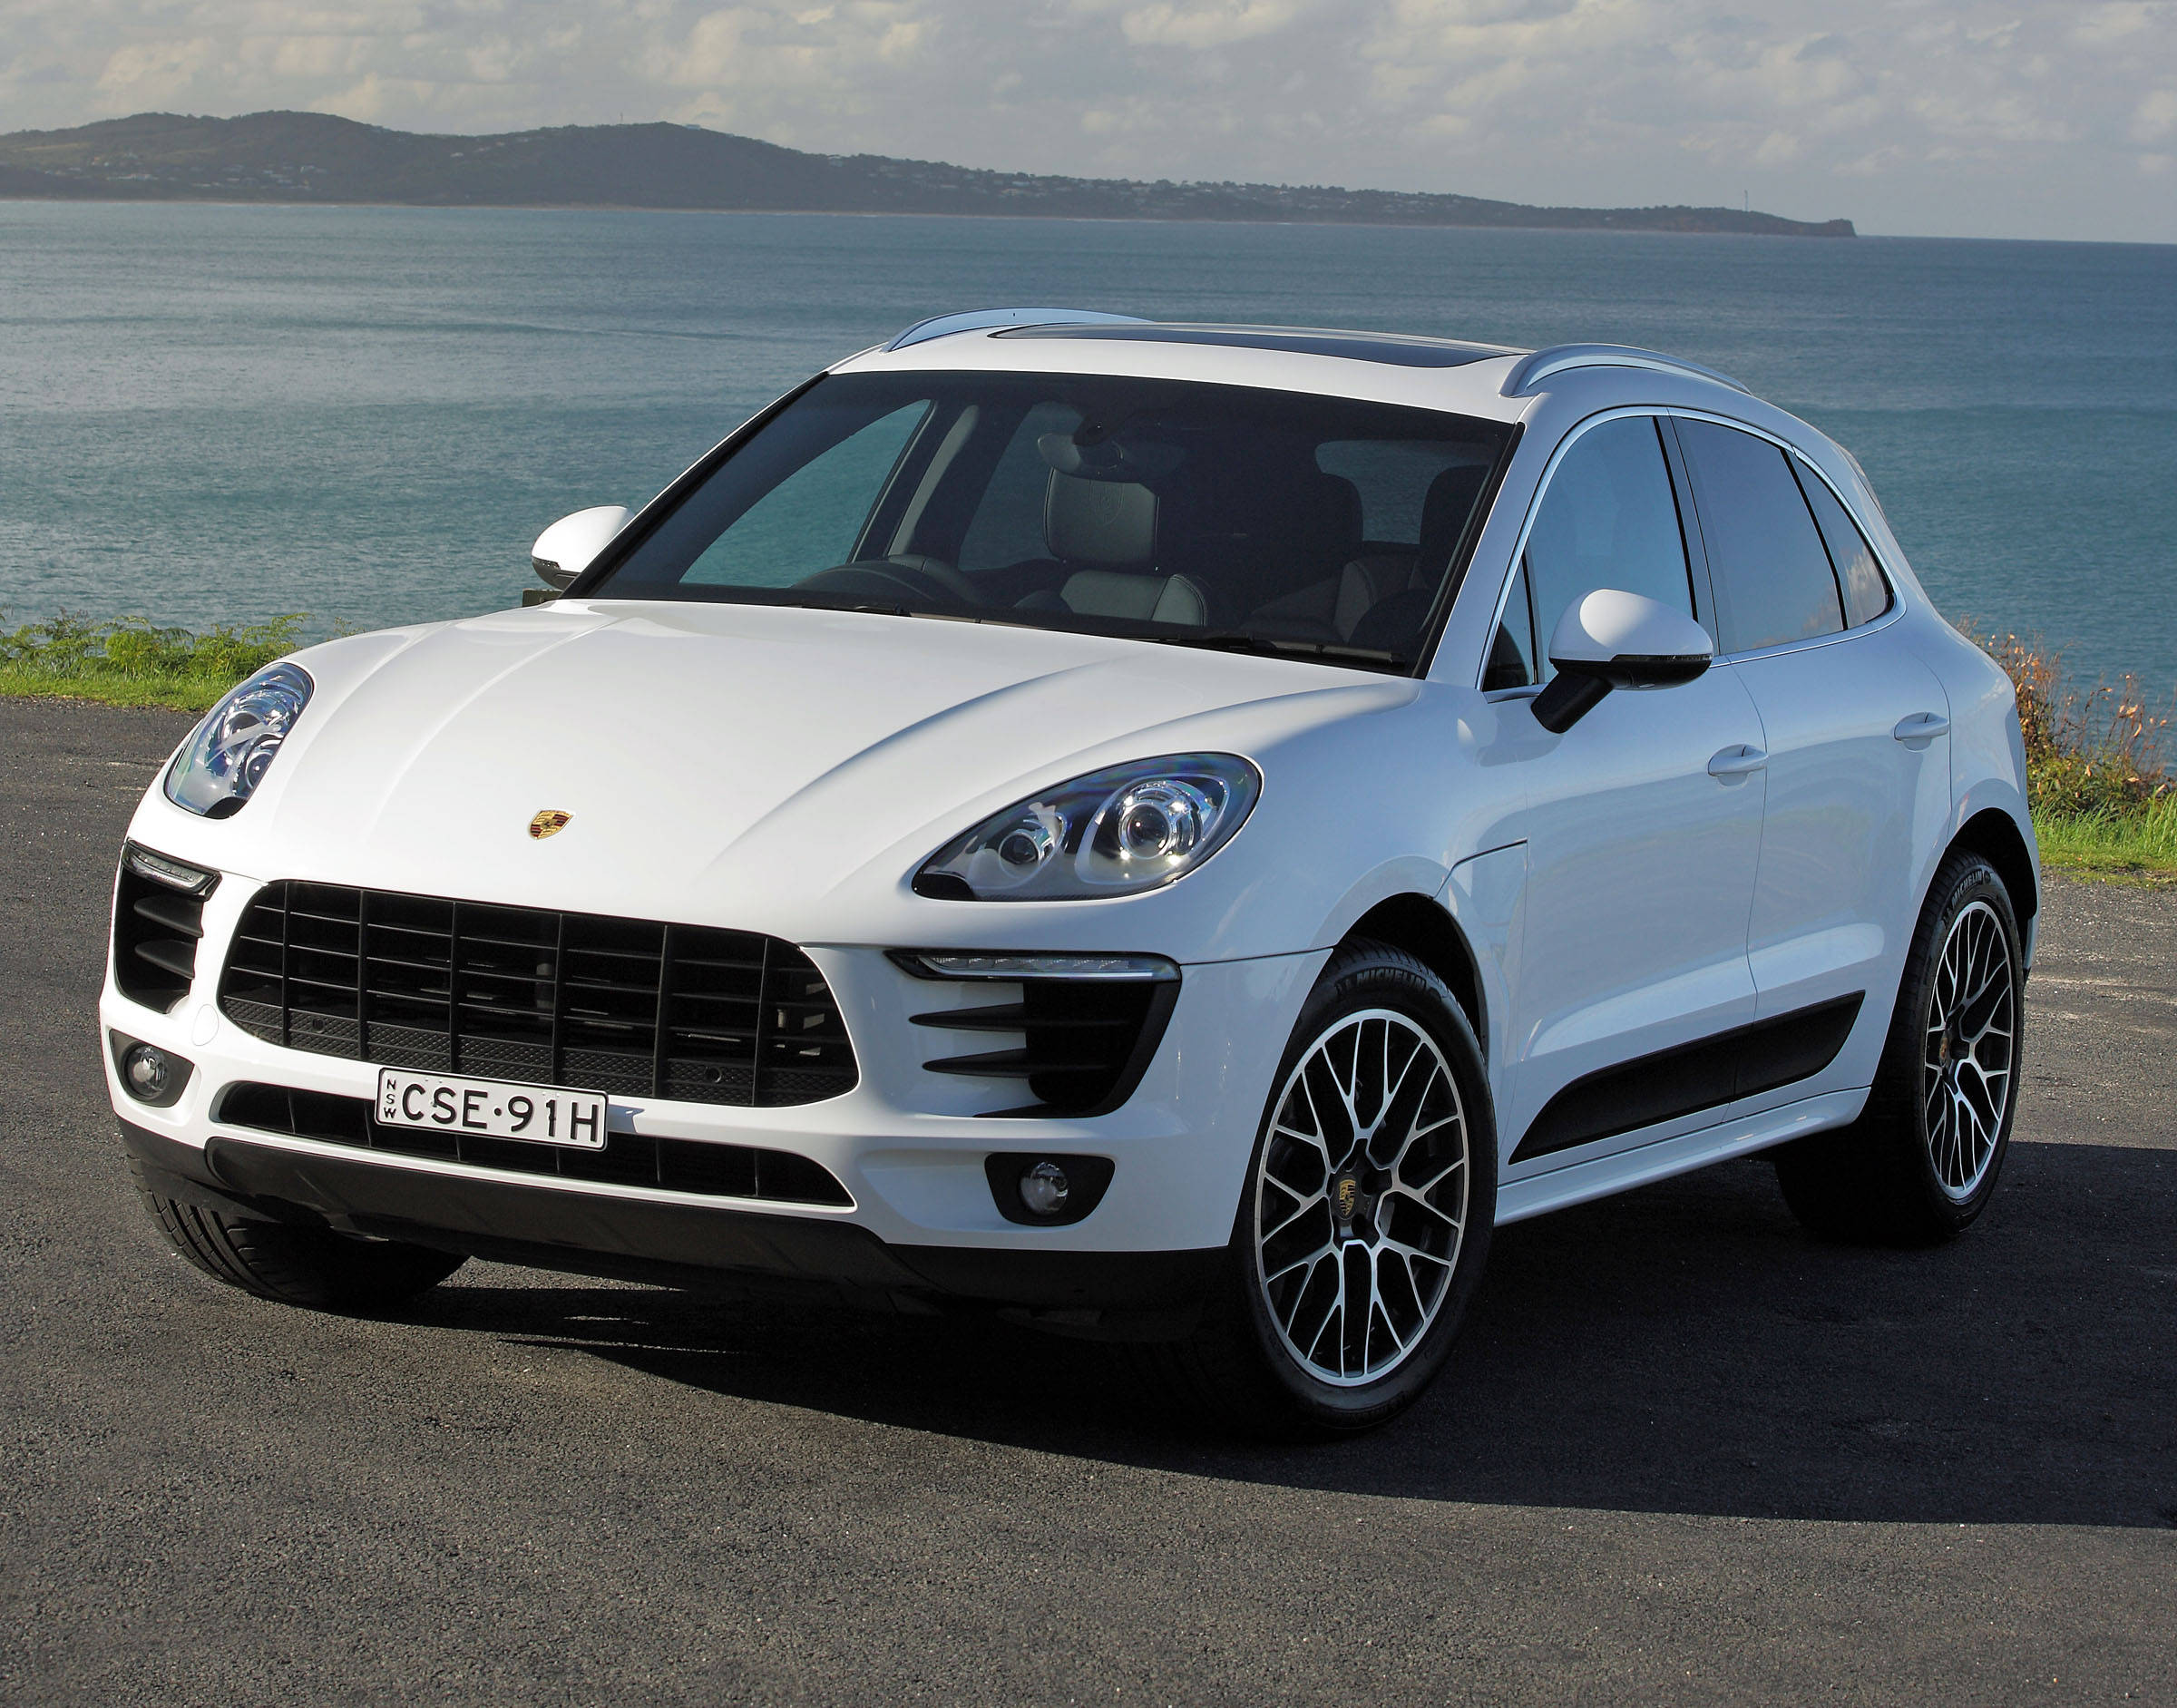 We Buy Used Cars >> Porsche Macan S 2015 review | CarsGuide